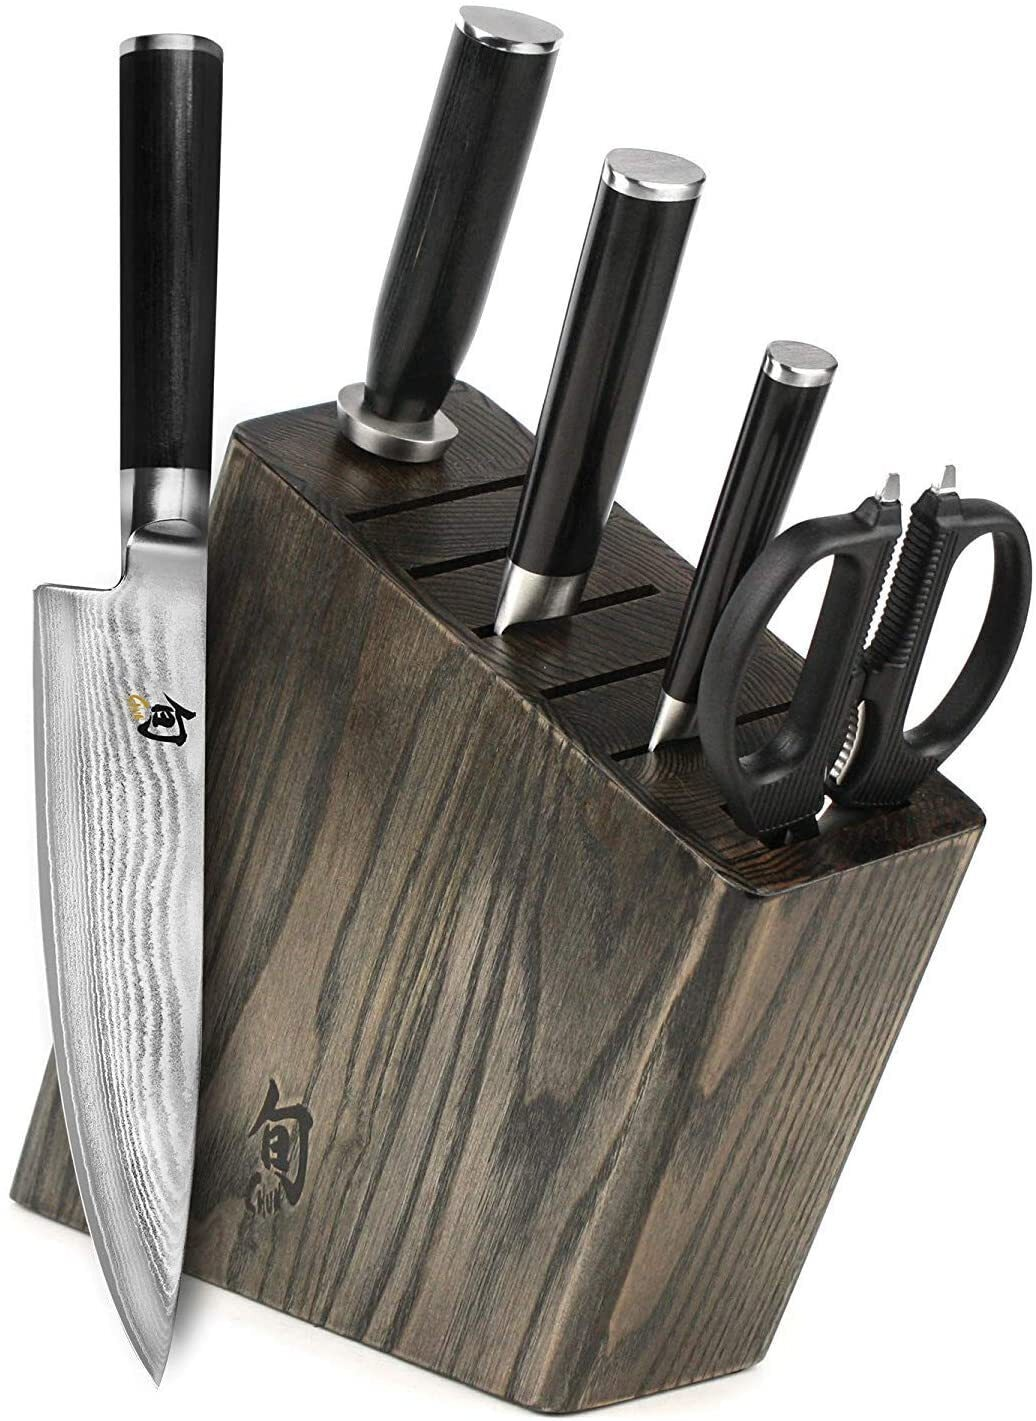 Shun Knife Set